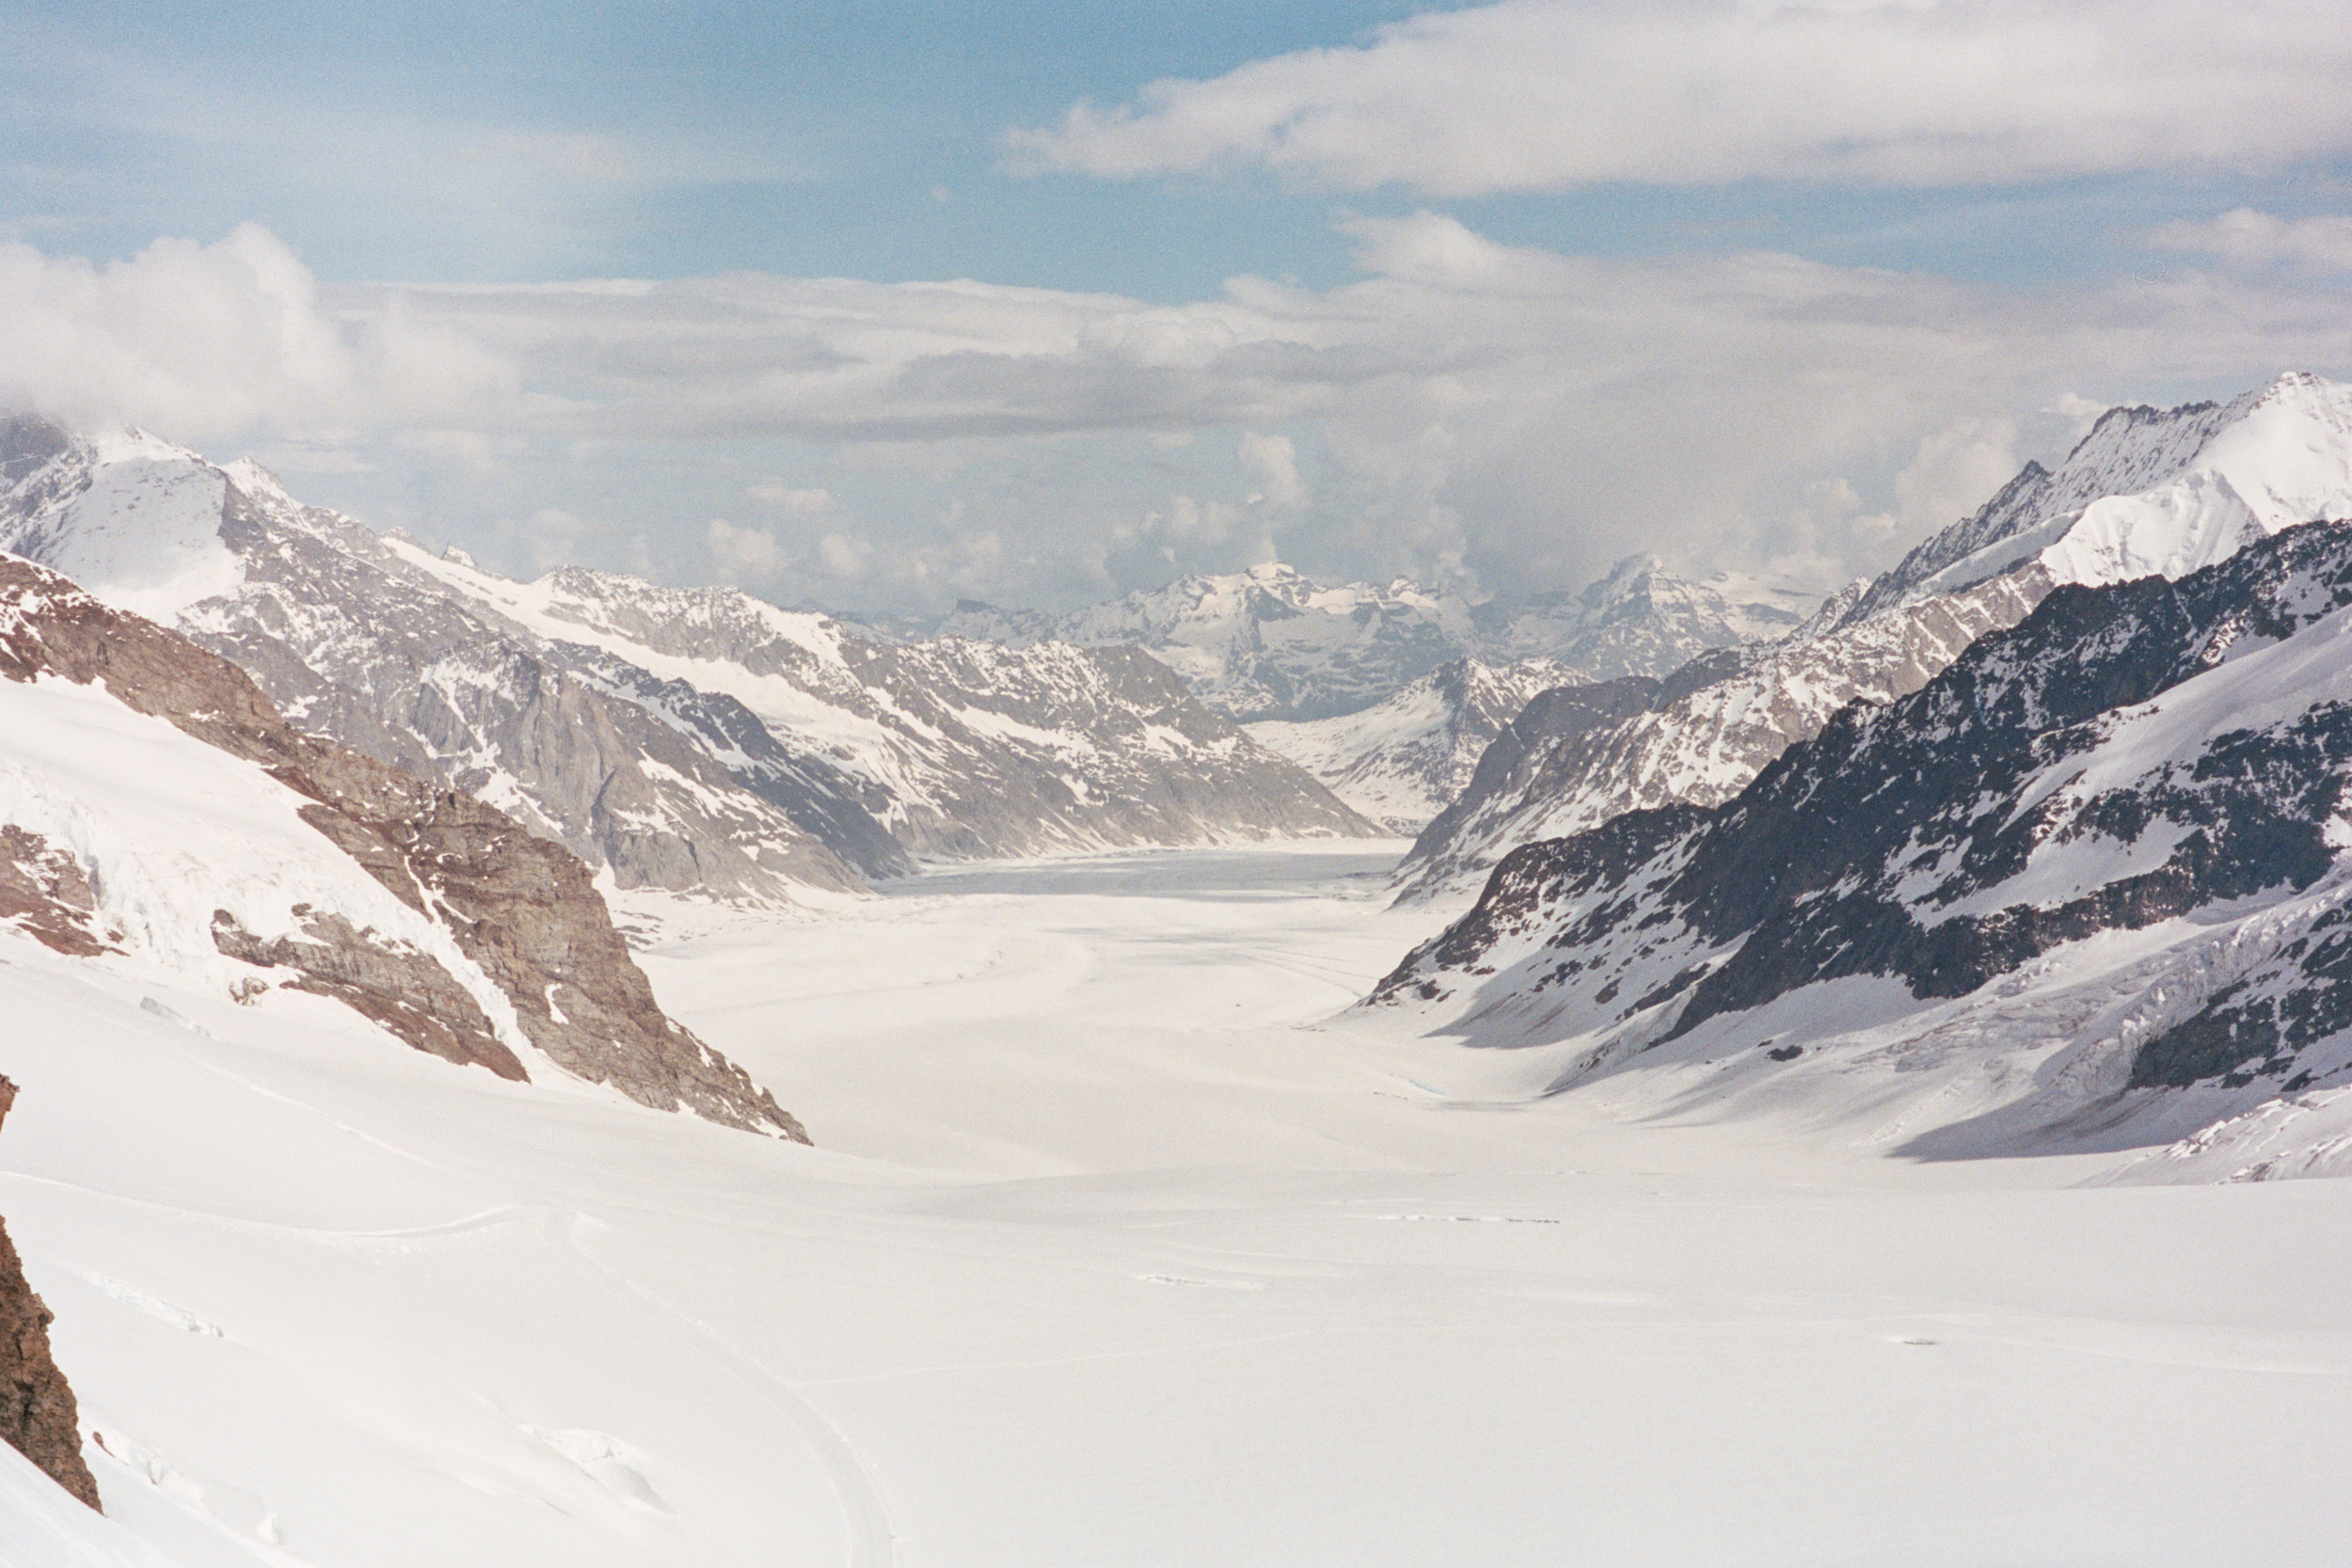 A clearer view of Aletsch Glacier, seen much later in the day